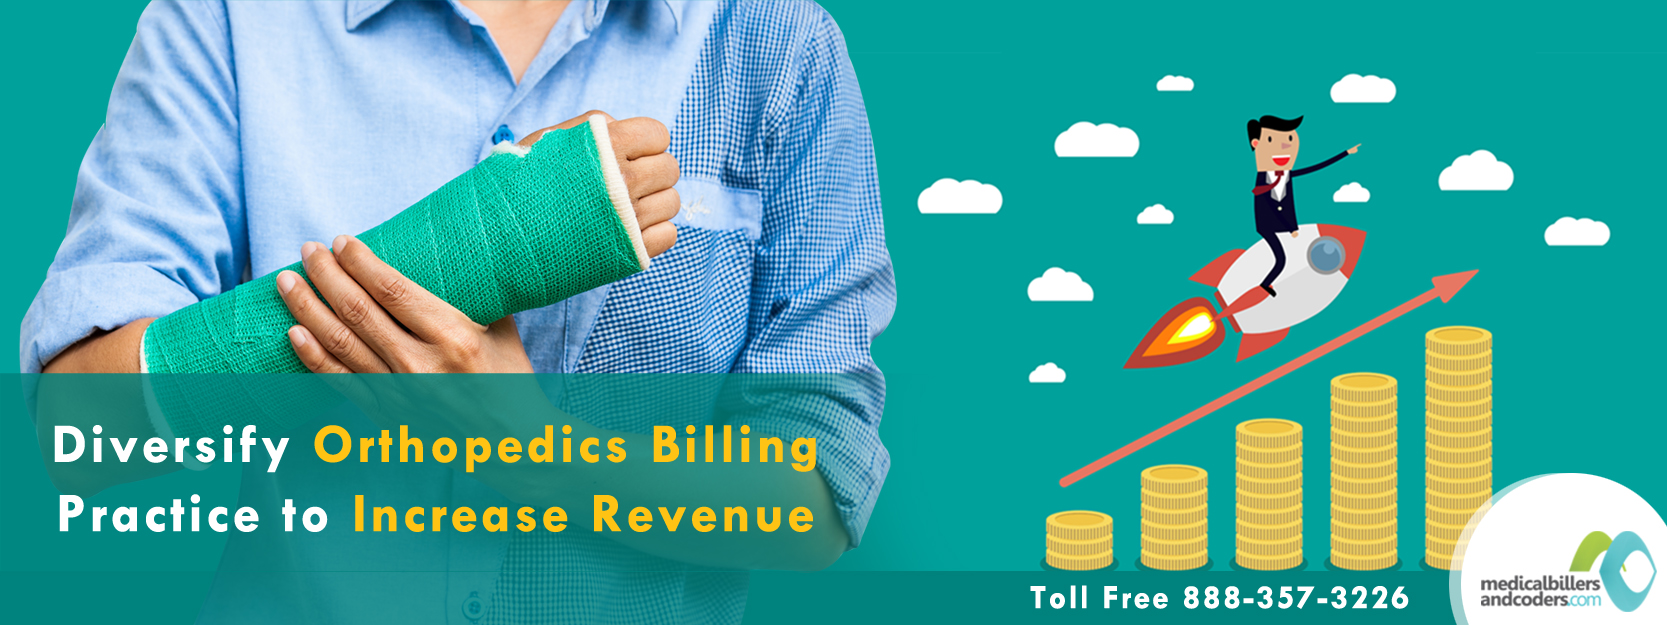 Diversify Orthopedics Billing Practice to Increase Revenue